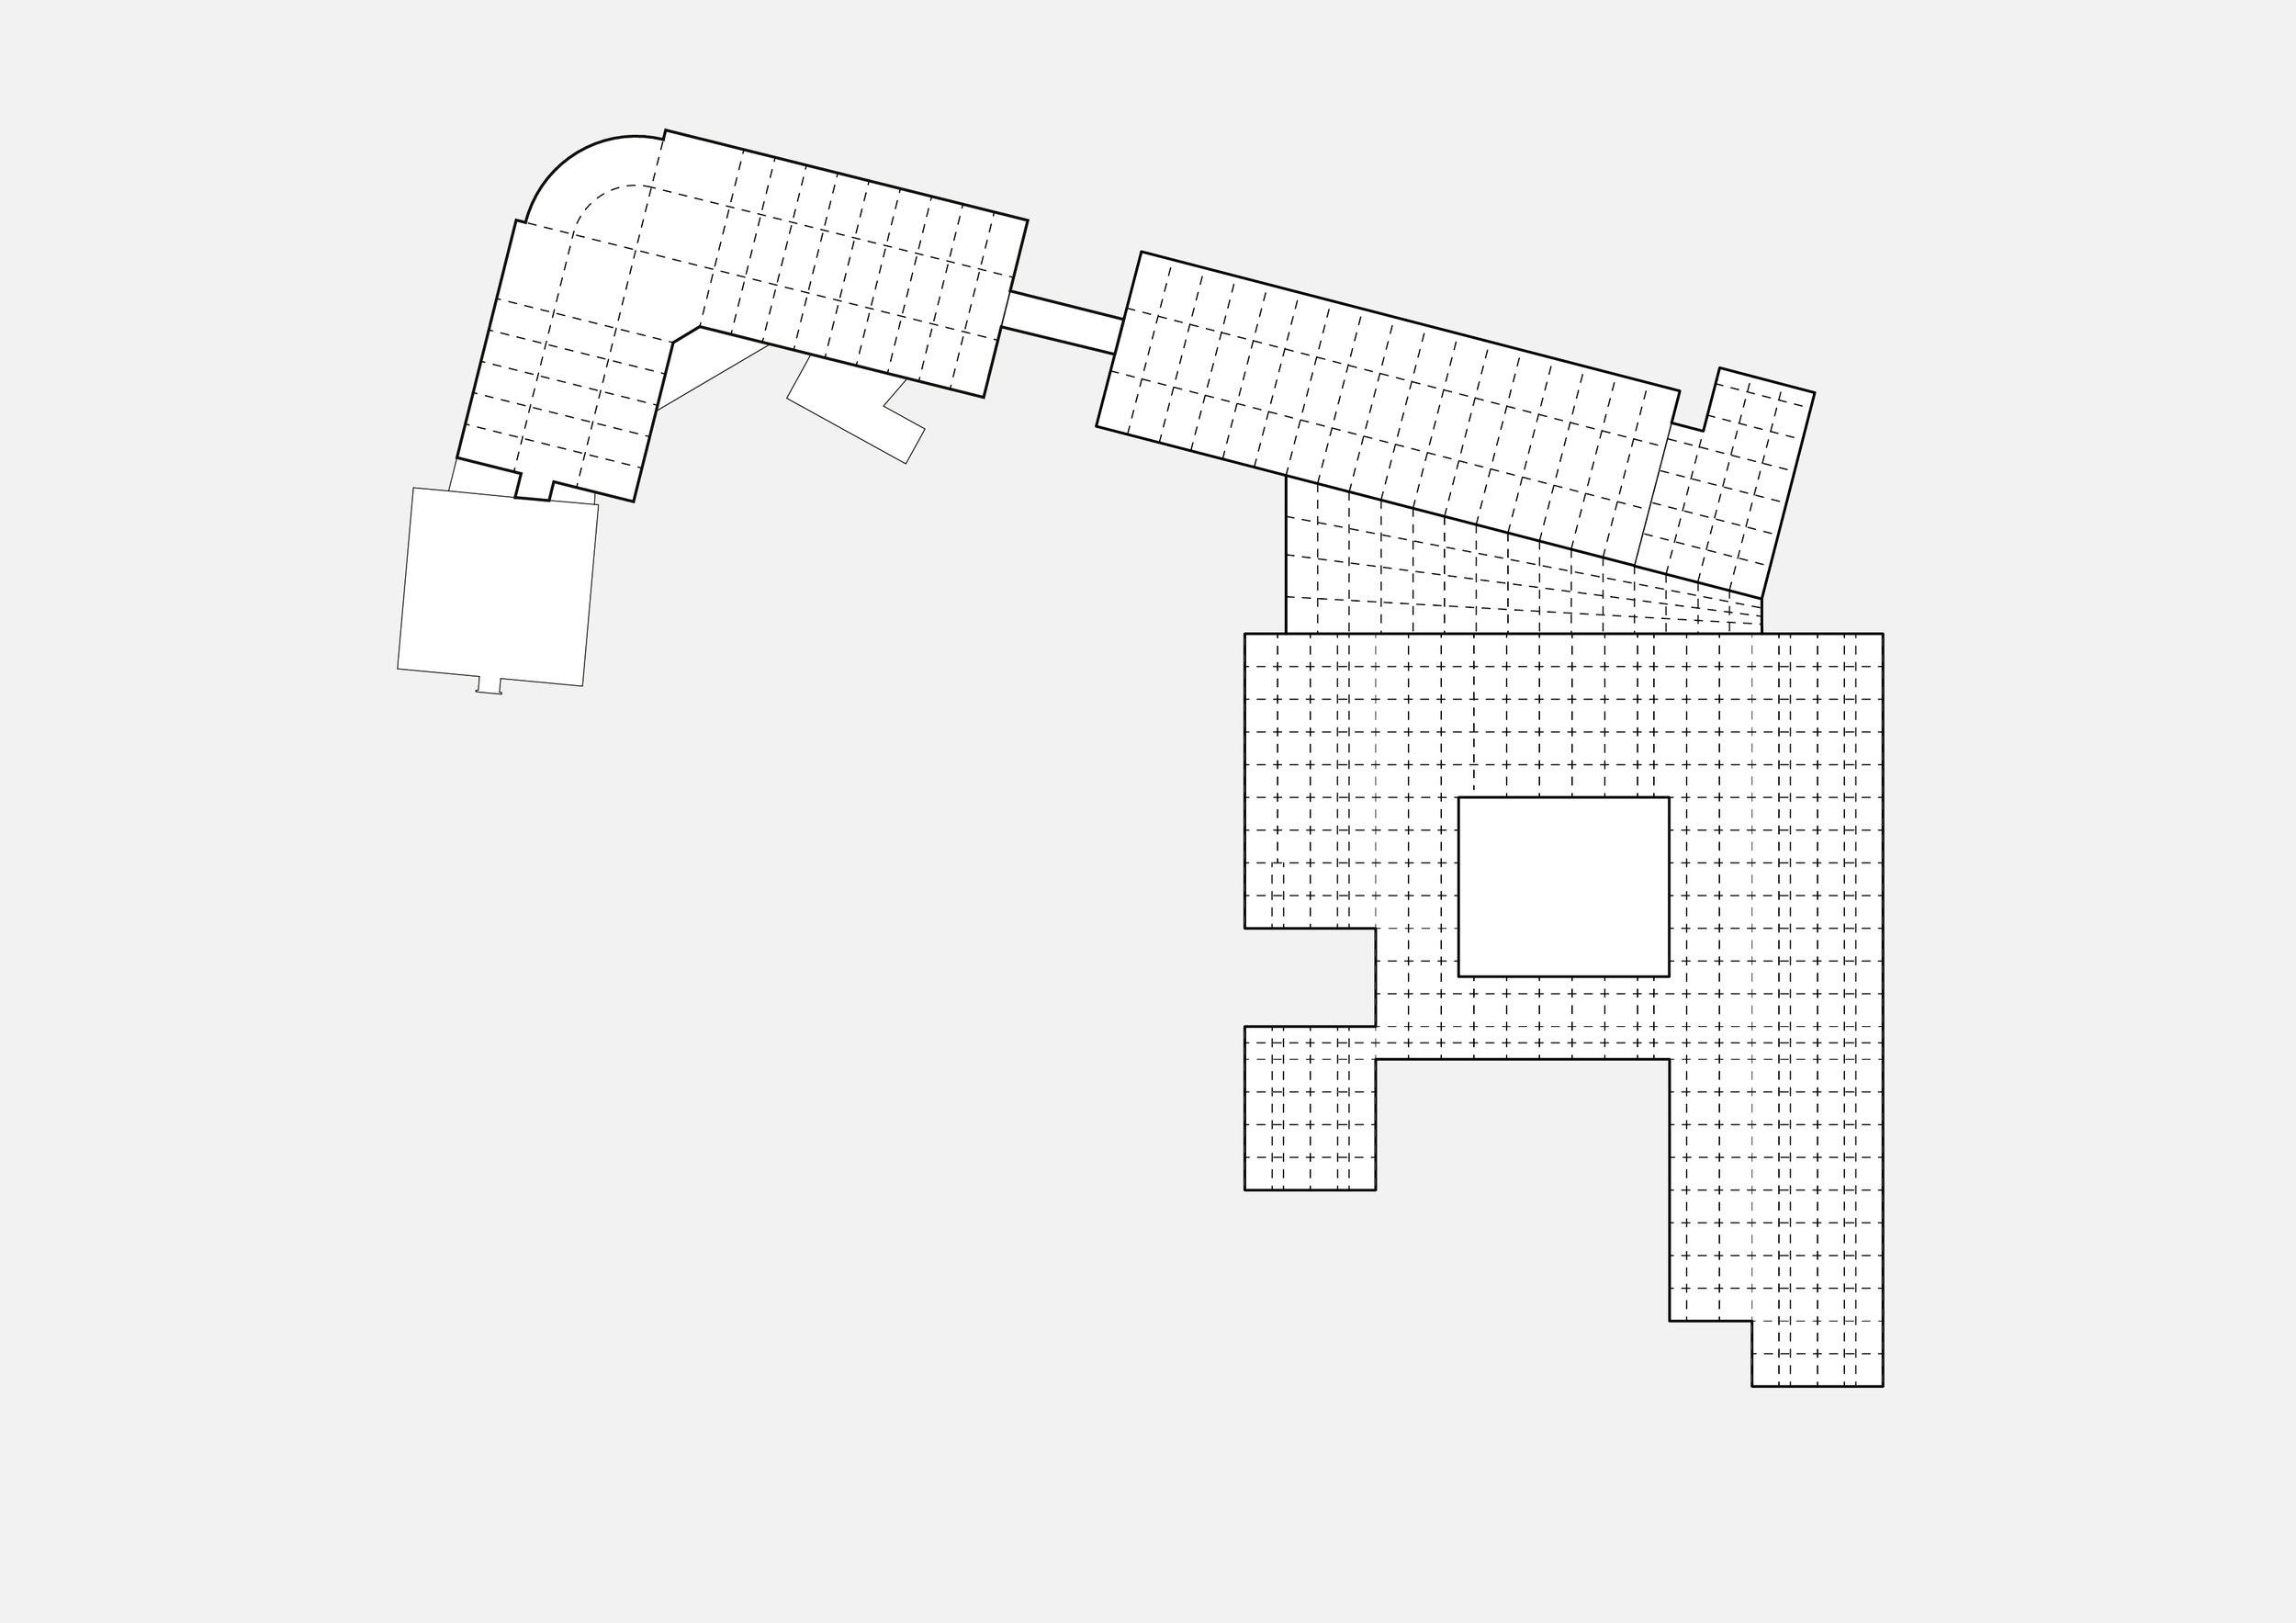 Existing buildings with a clear grid